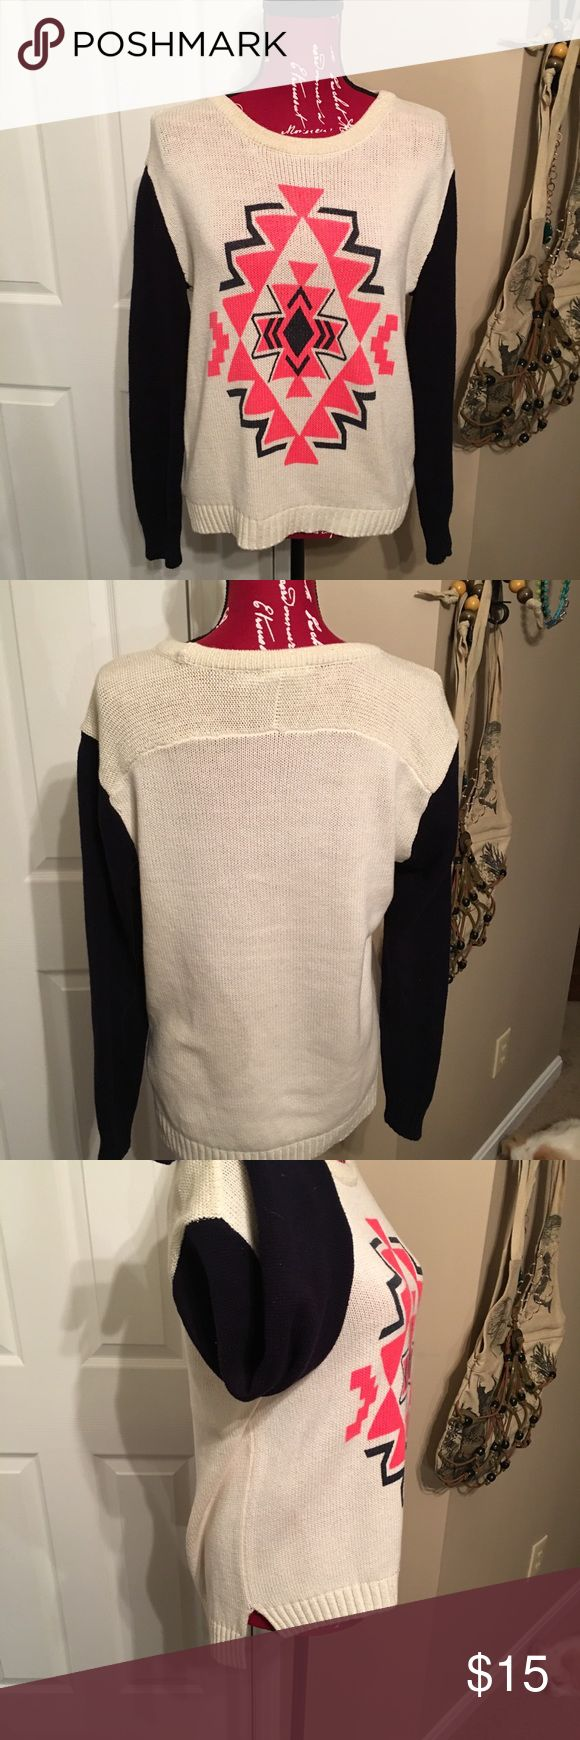 EUC tribal print sweater EUC Tribal print sweater from Forever 21. Cream colored body with gold metallic threading in shoulder and neckline and navy blue sleeves. Pretty bright coral pink tribal design. Hemline is longer in the back. Size M Forever 21 Sweaters Crew & Scoop Necks